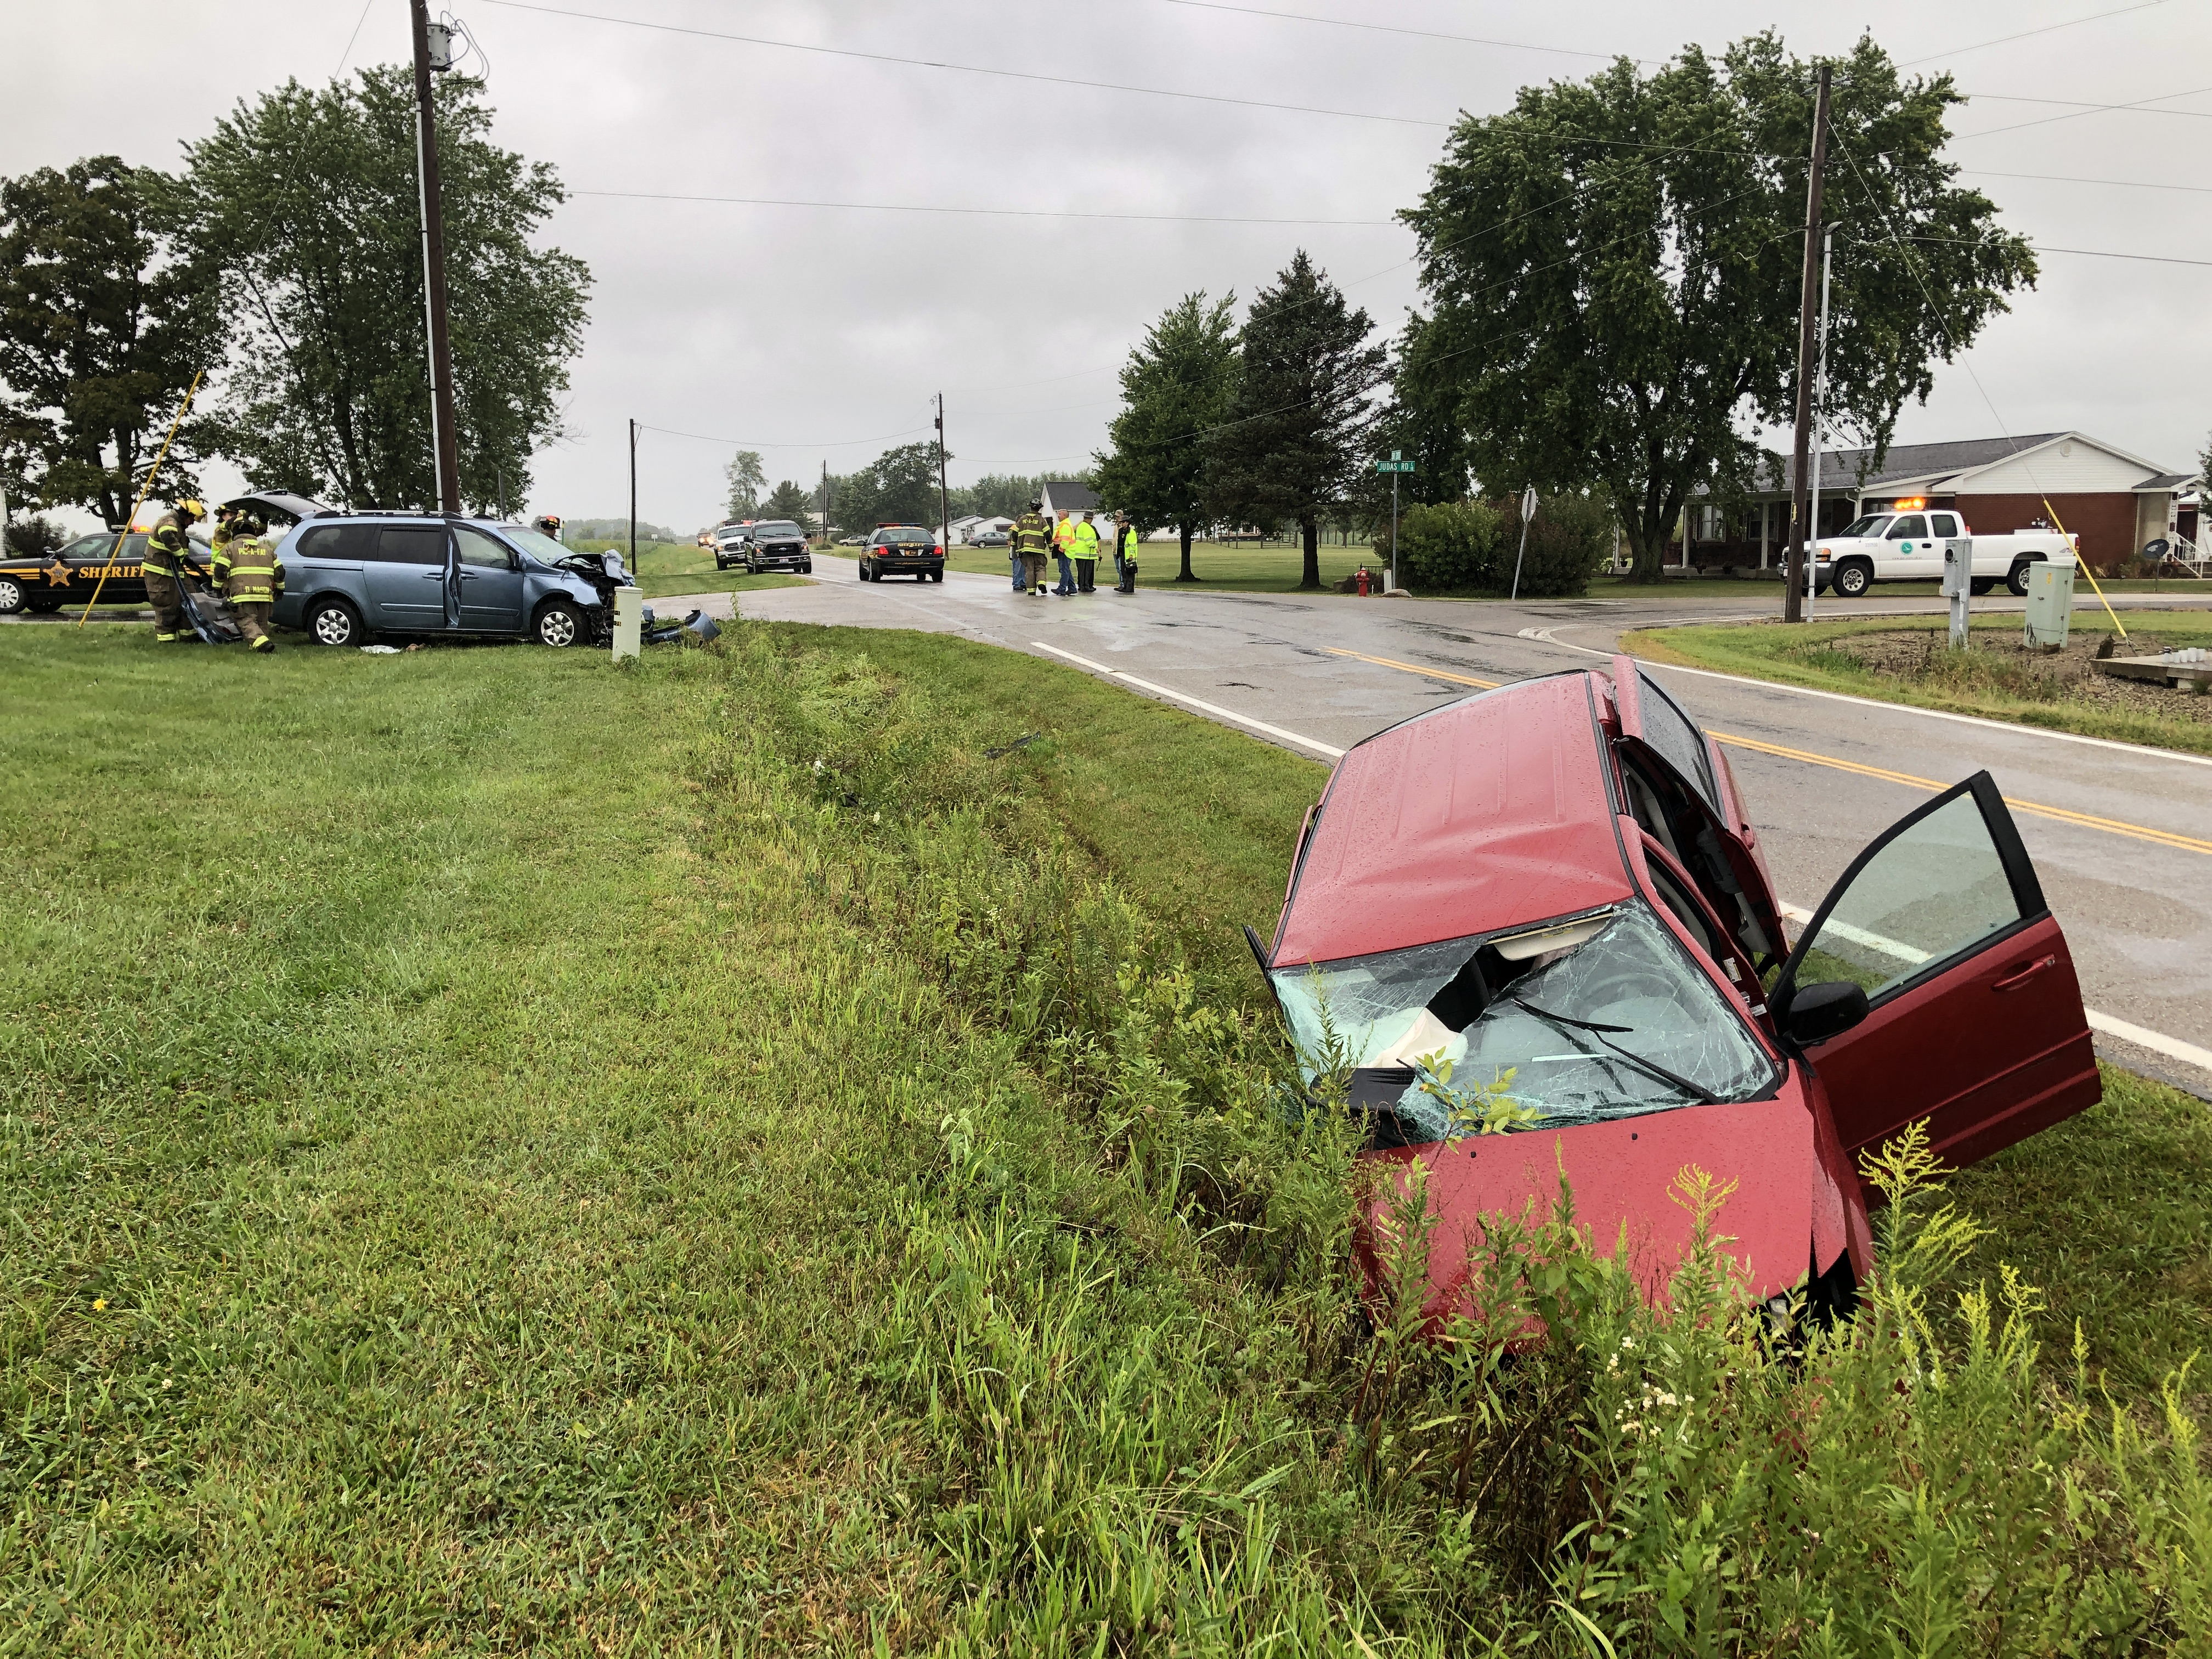 95-Year-Old Killed in Pickaway County Accident in Perry